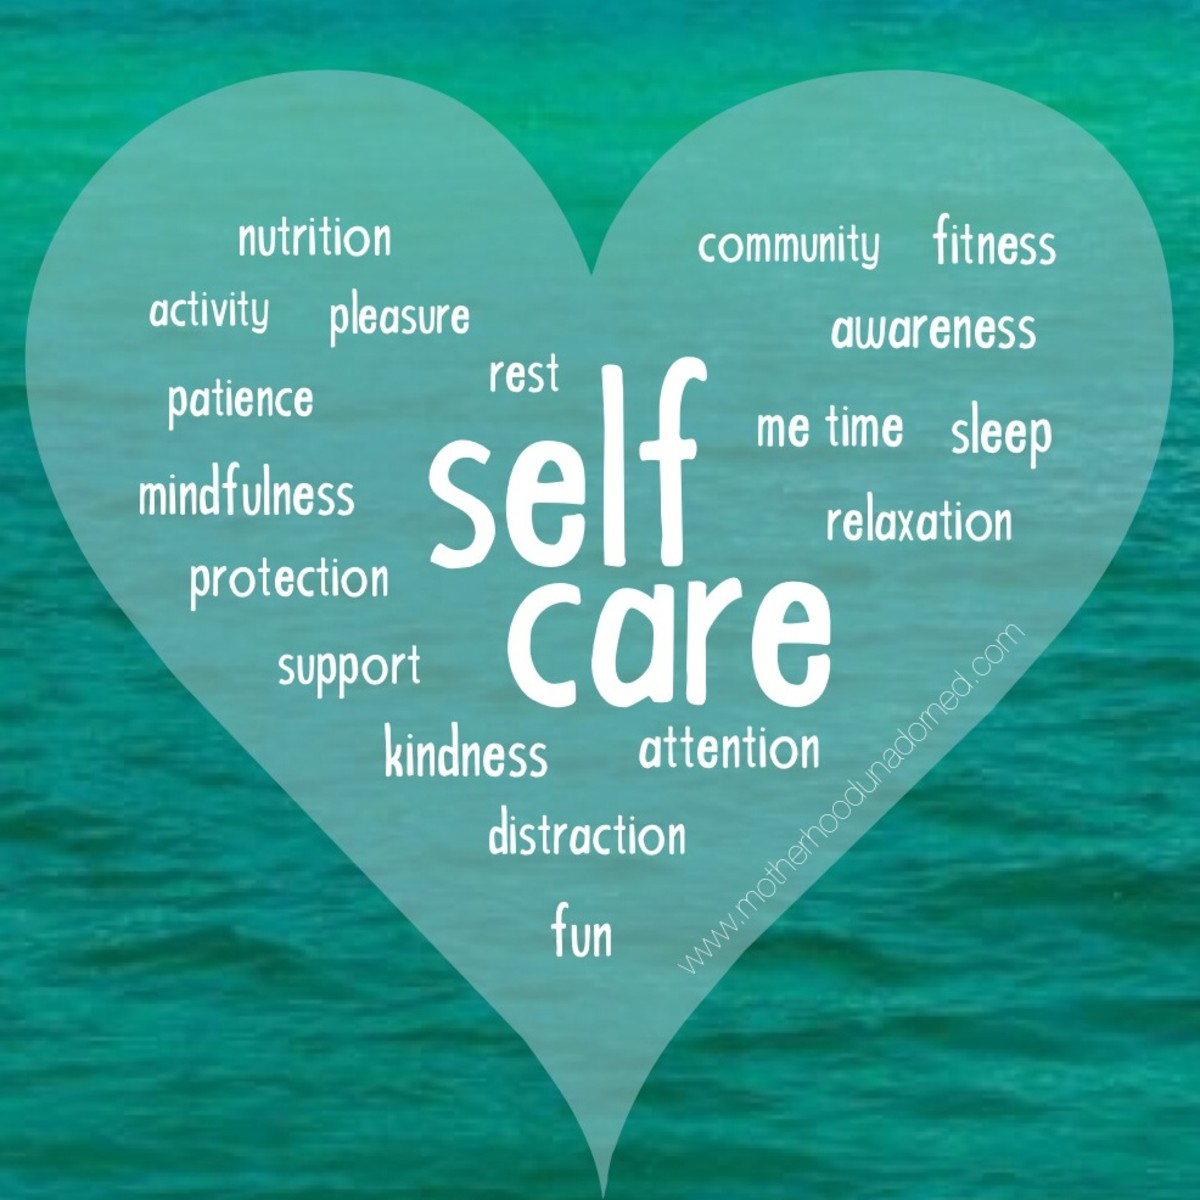 What is your personal definition of self-care?